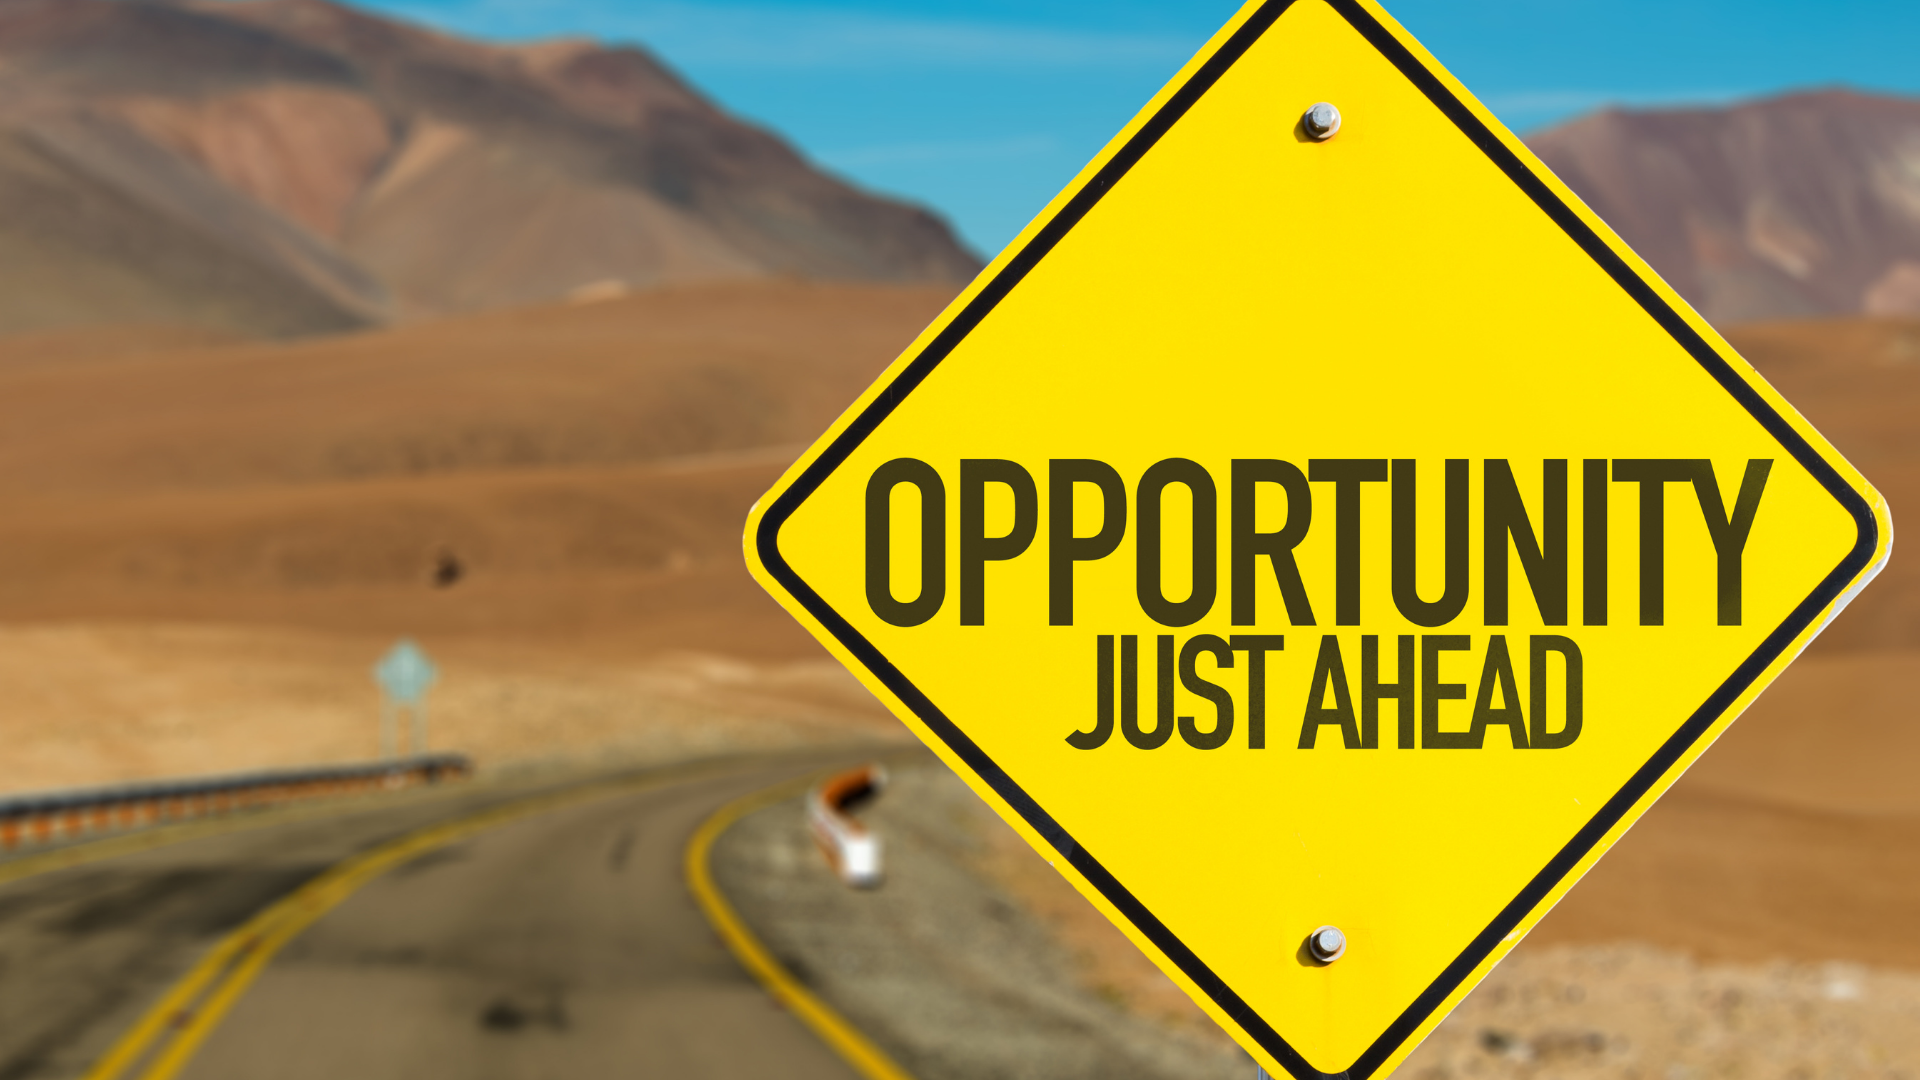 OPPORTUNITY ZONES: The 411 (by John Churchward)